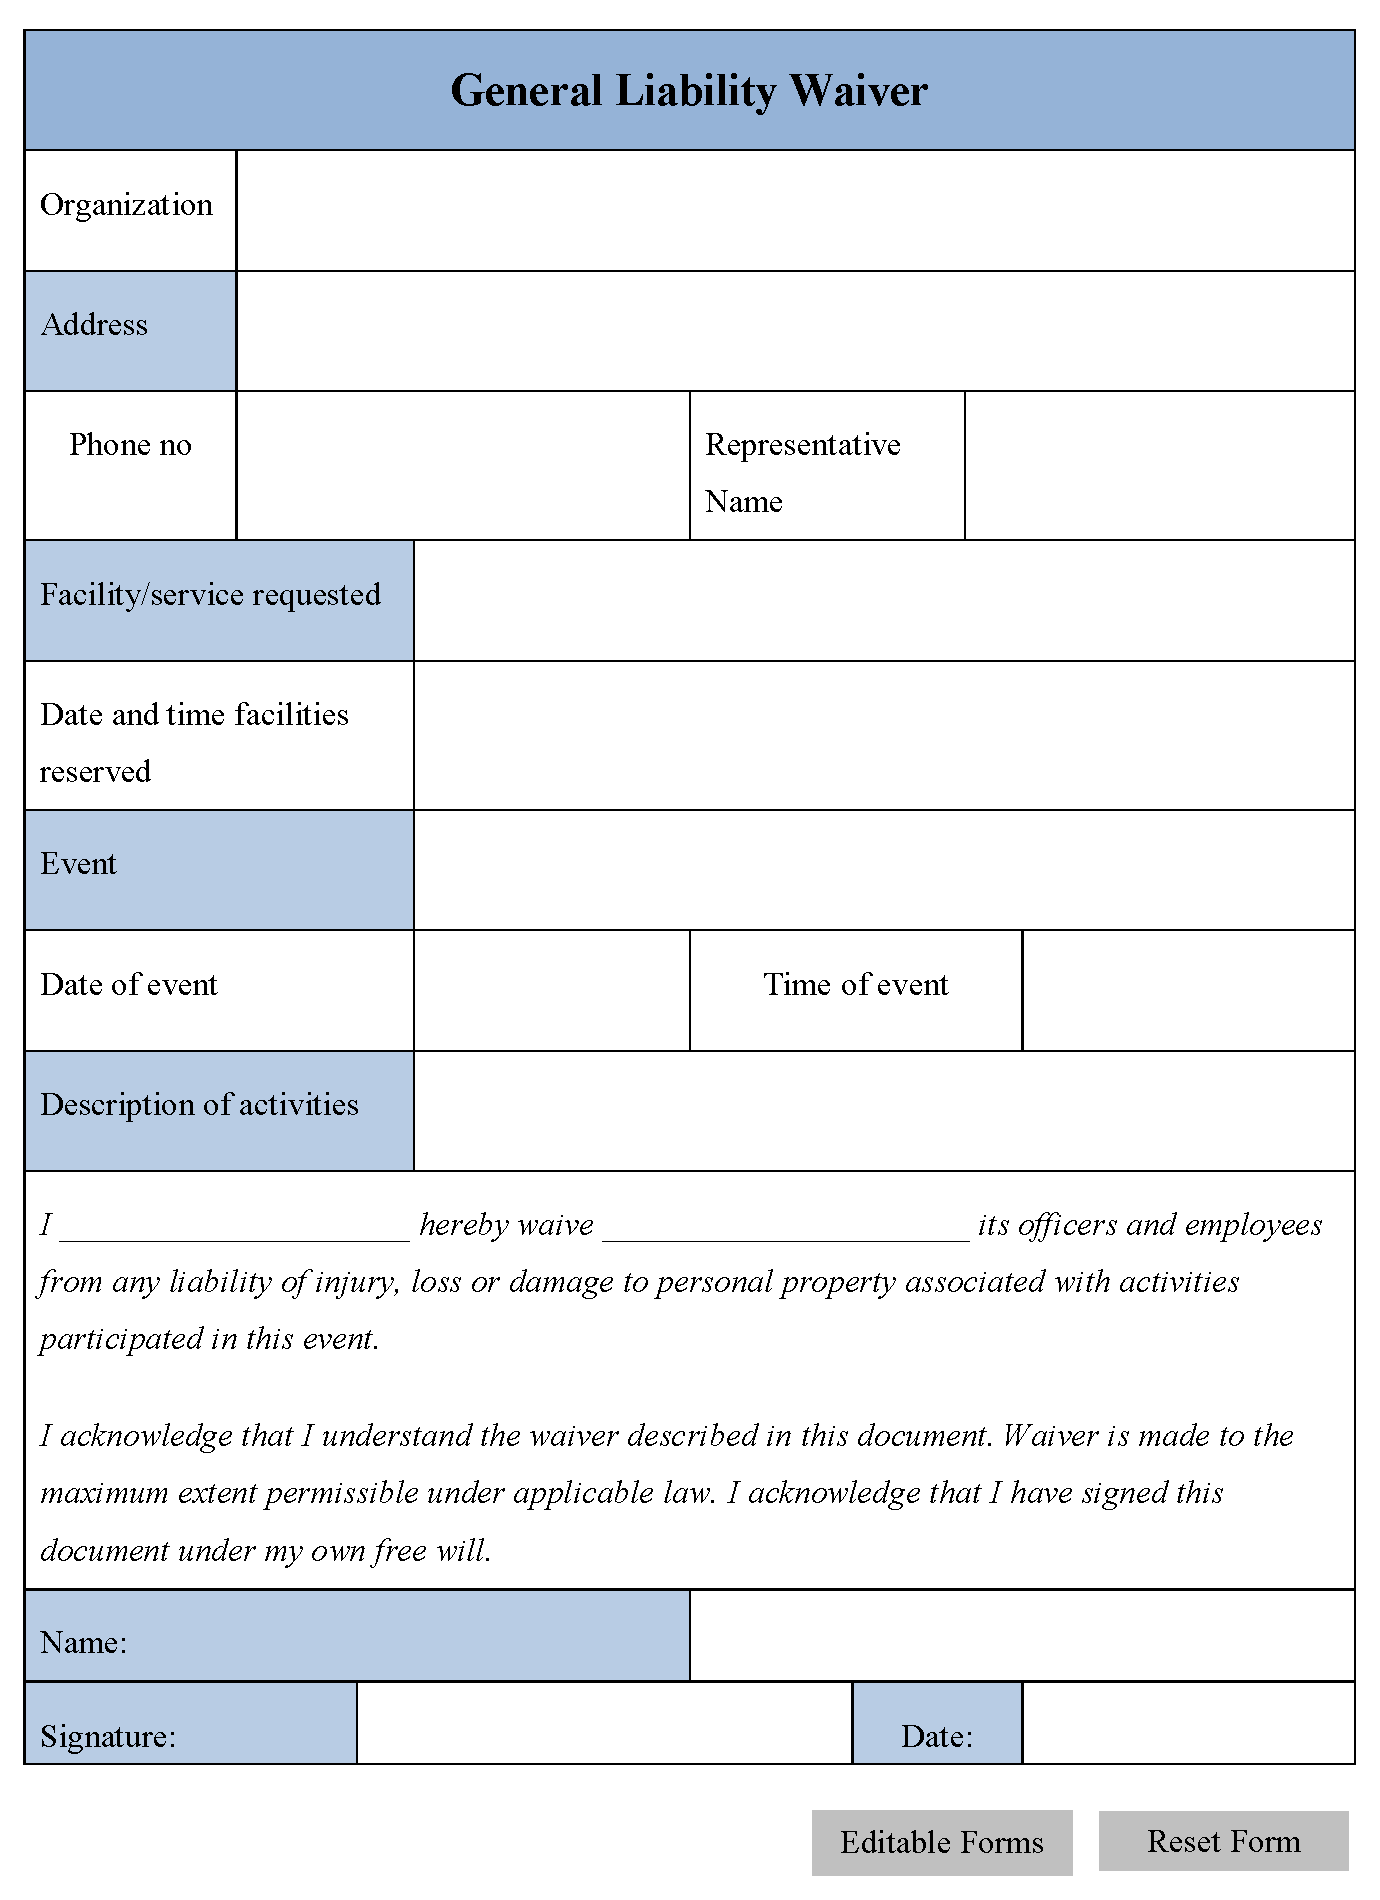 78 images about Home Care – Waiver Template Word